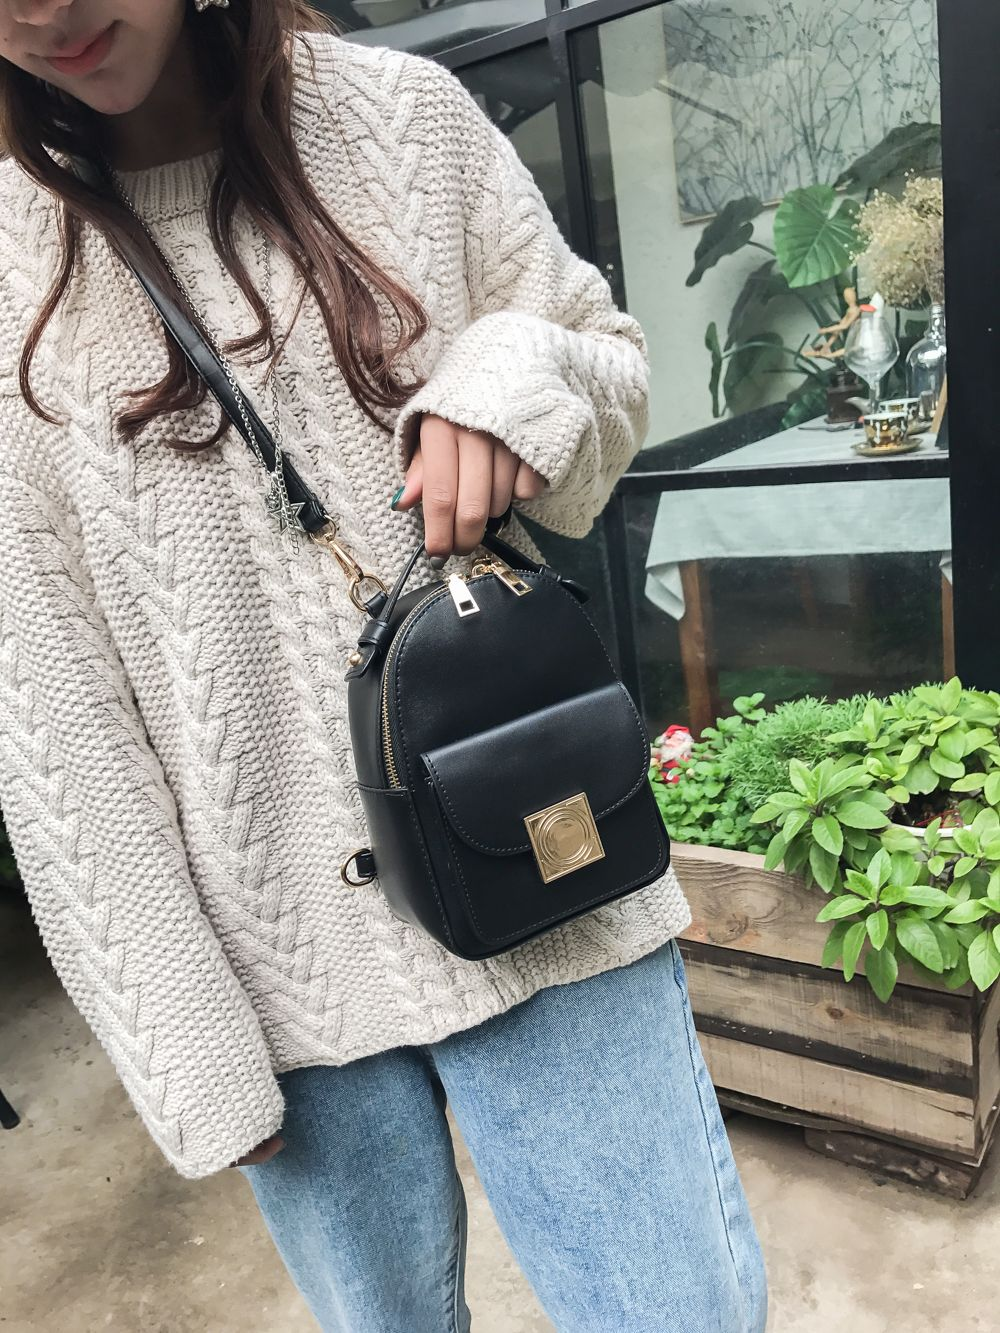 The Double Shoulder Bag Female Knapsack in The New Style of The New Fashion The Women's Single Shoulder Double Back